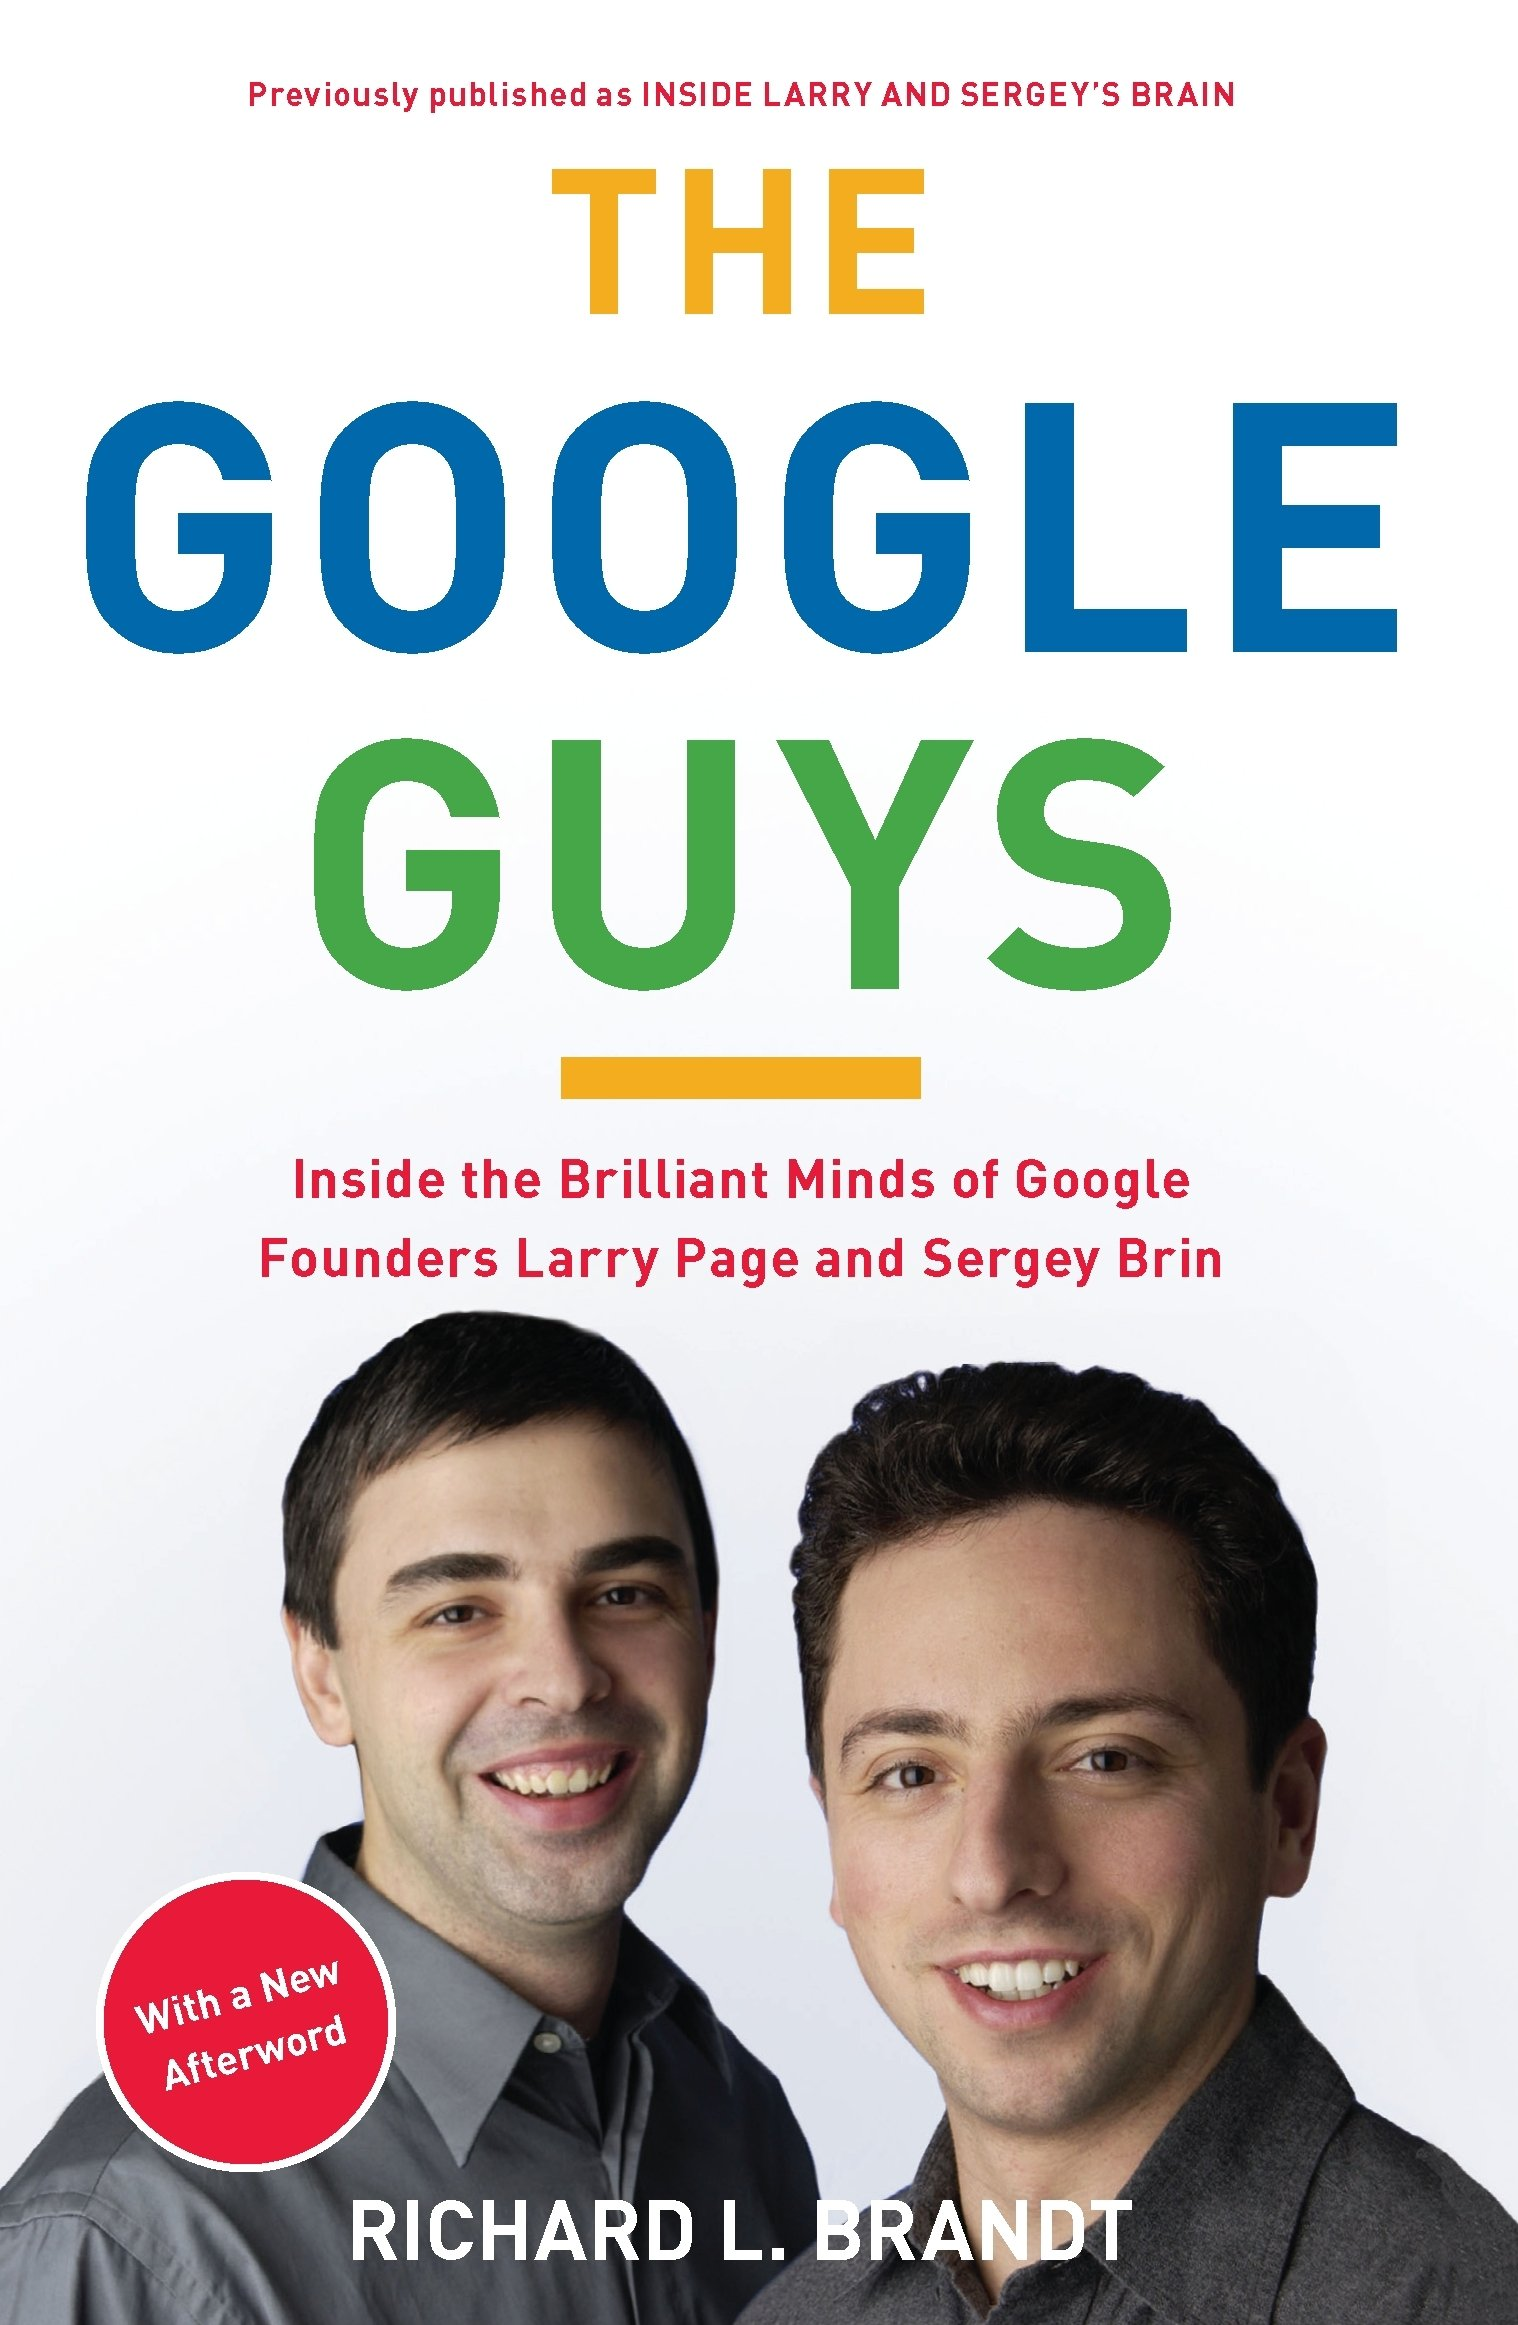 The Google Guys: Inside the Brilliant Minds of Google Founders Larry Page and Sergey Brin